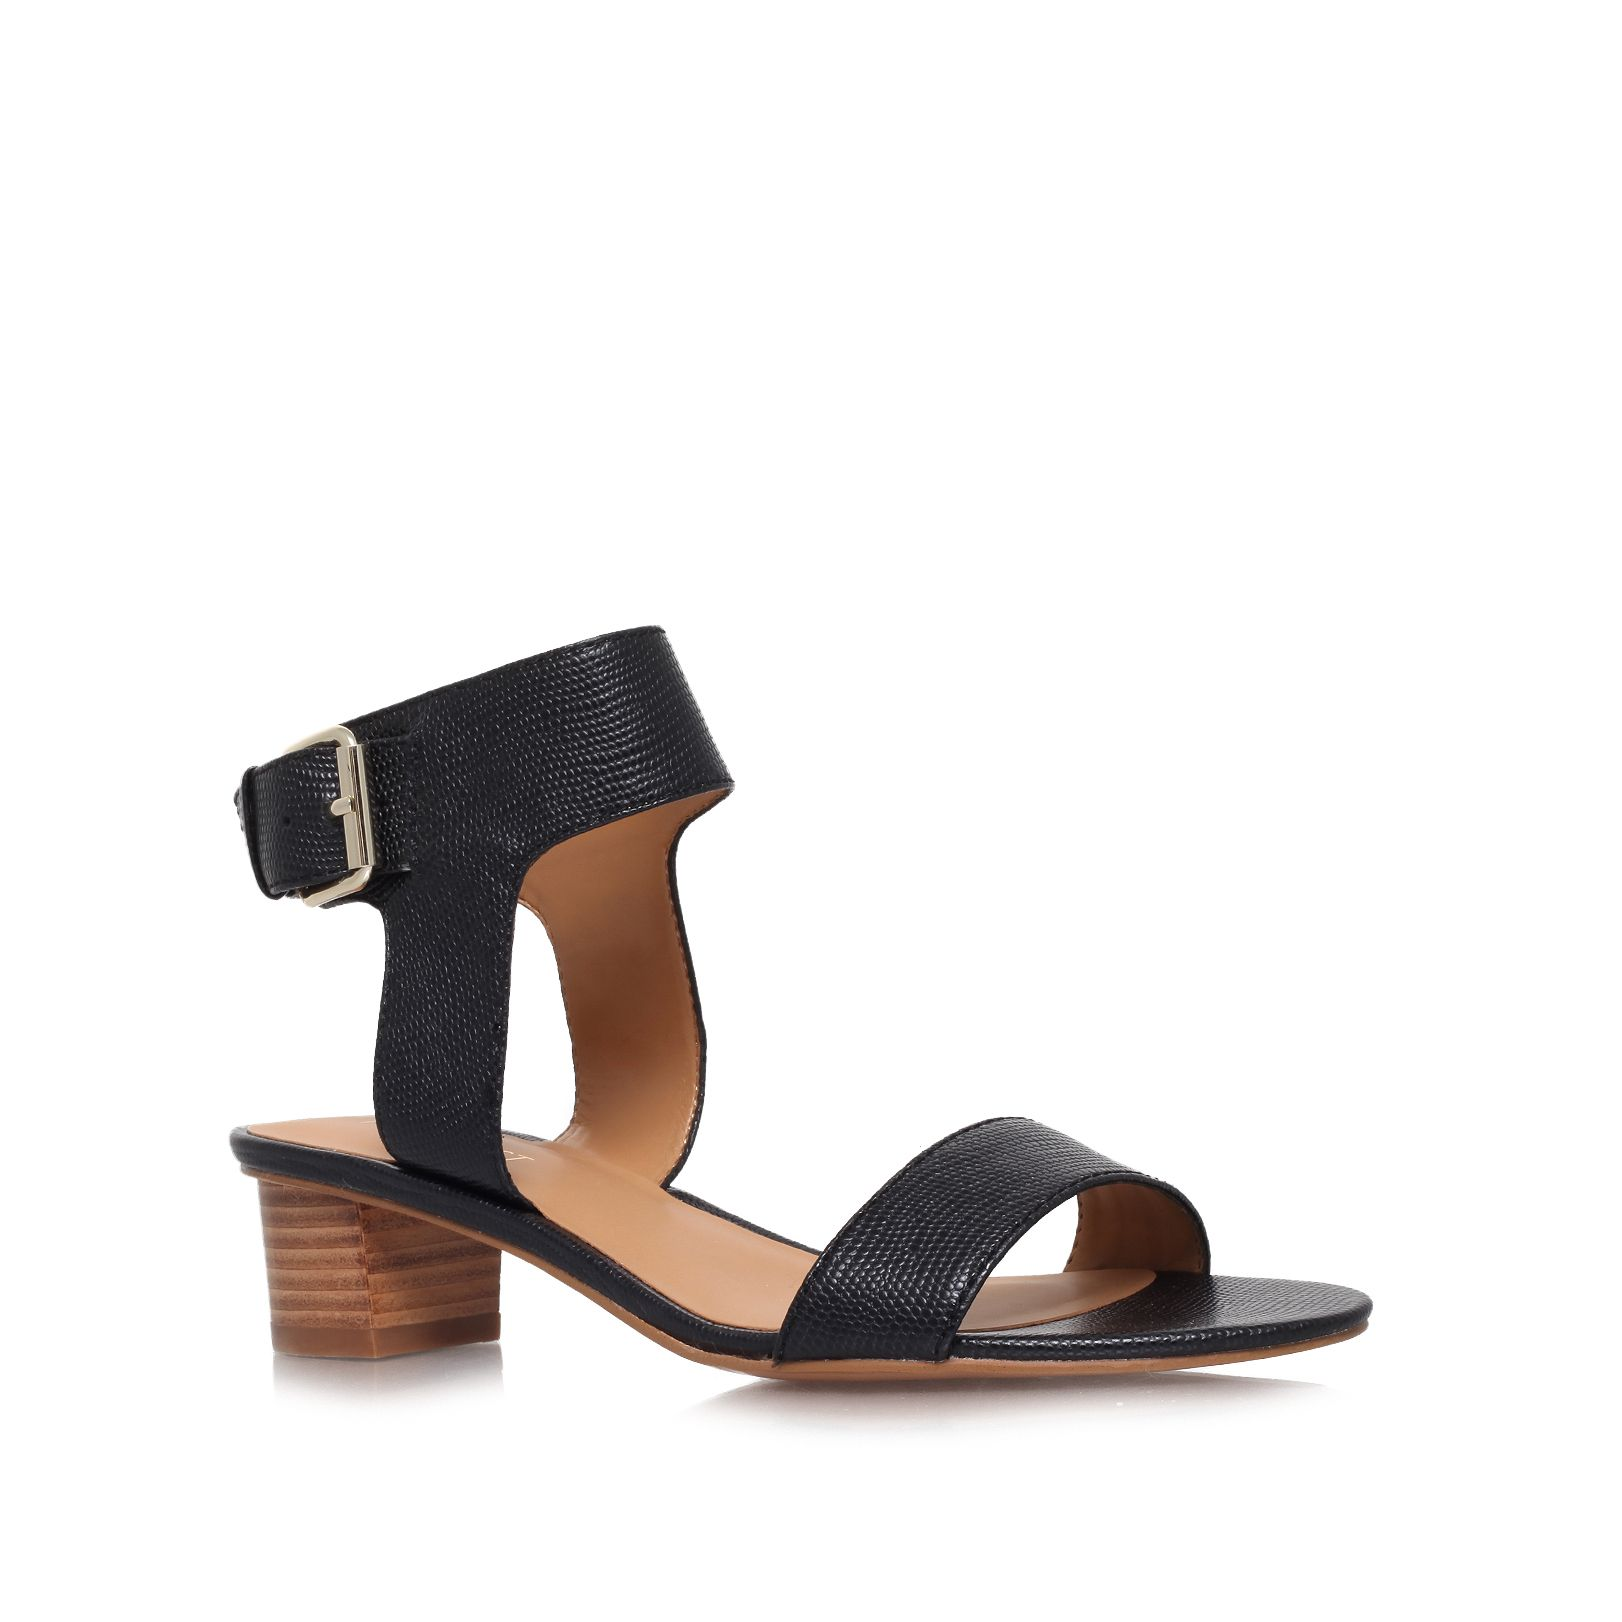 Tasha low heeled sandals